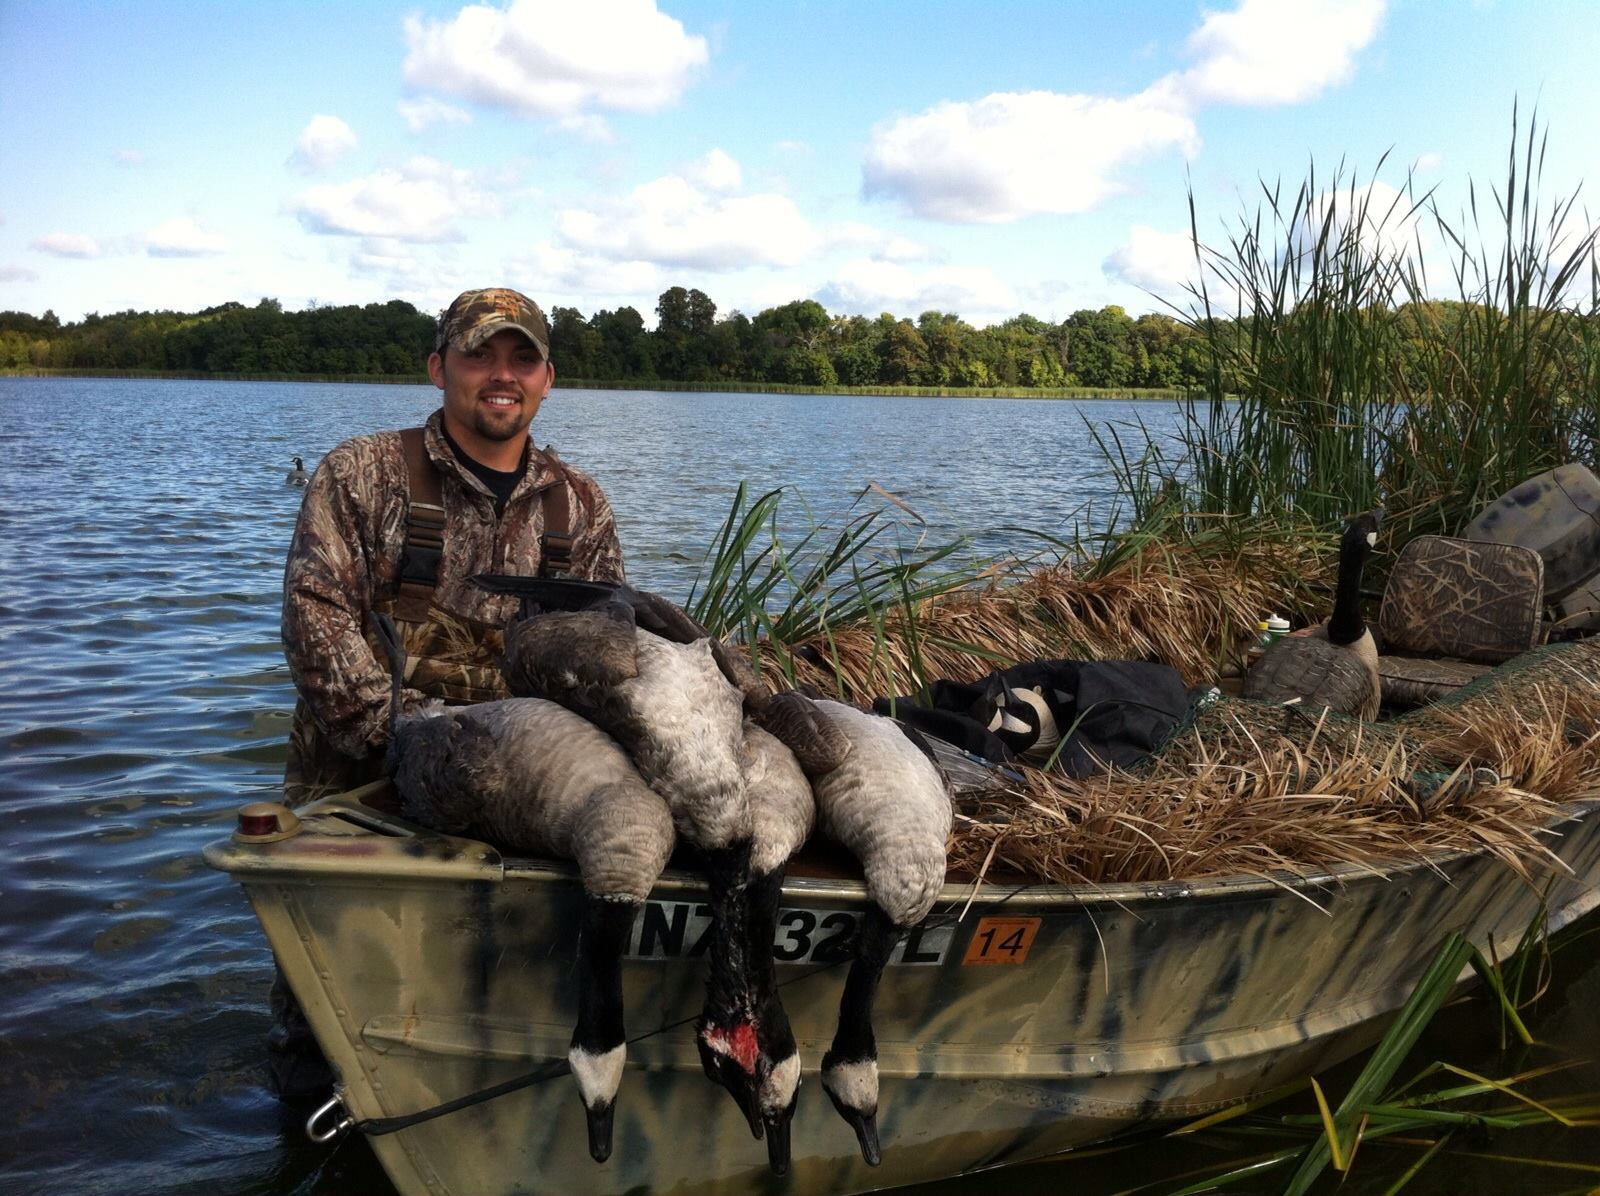 Trevor with some geese on his boat blind